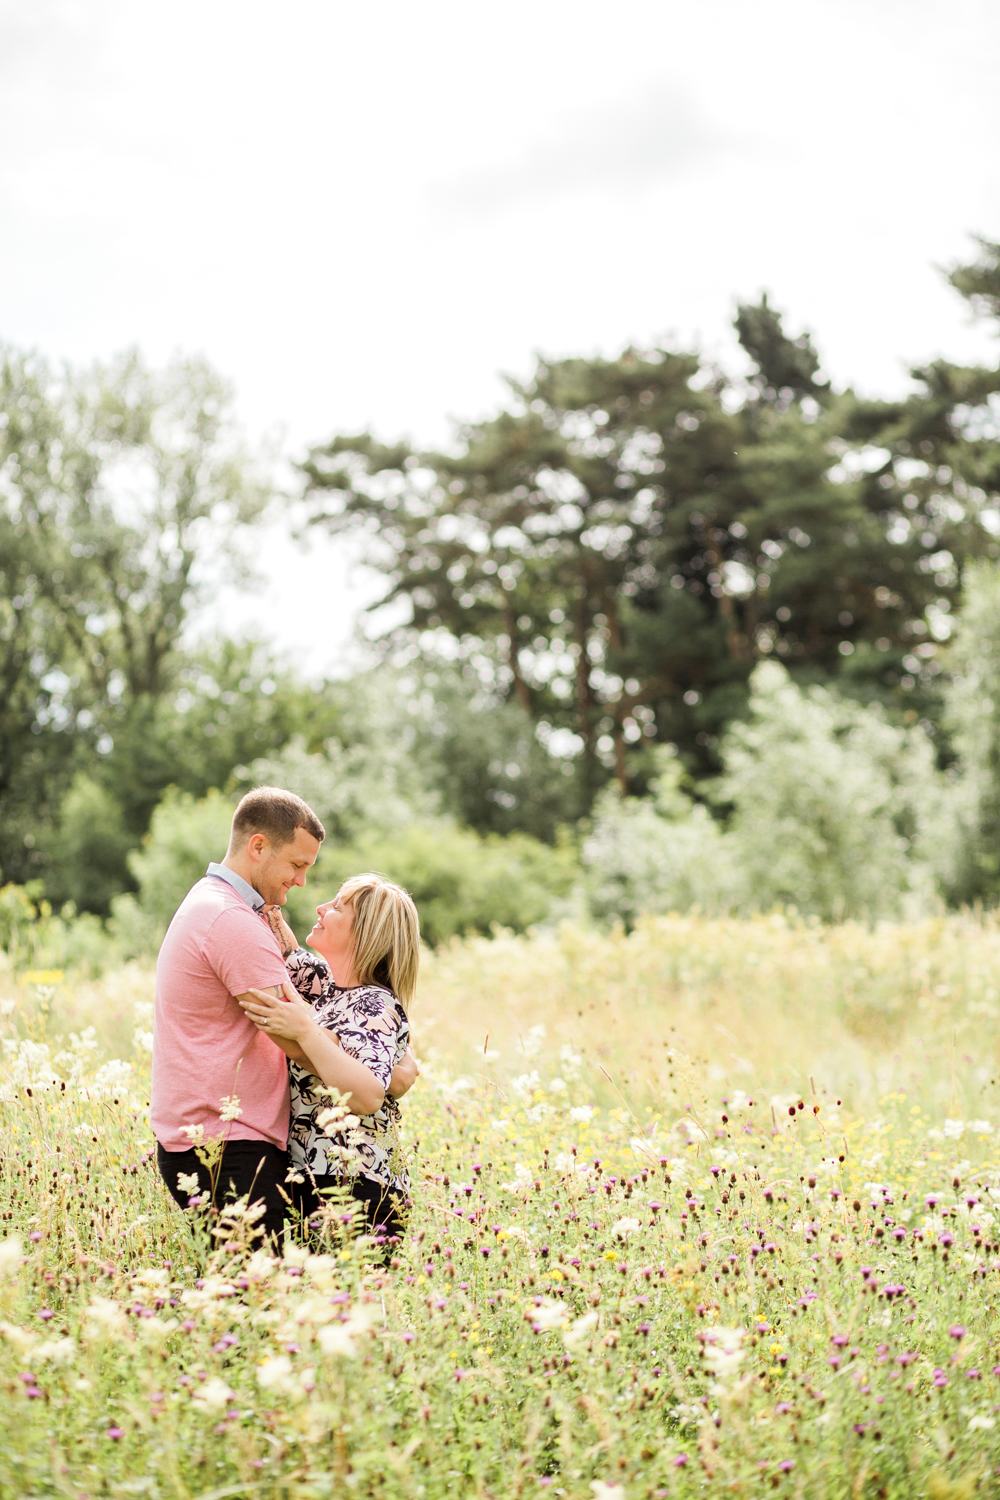 Jo & James Engagement shoot sophie Evans Photography Warwickshire Cotswold wedding Photographer-15.jpg